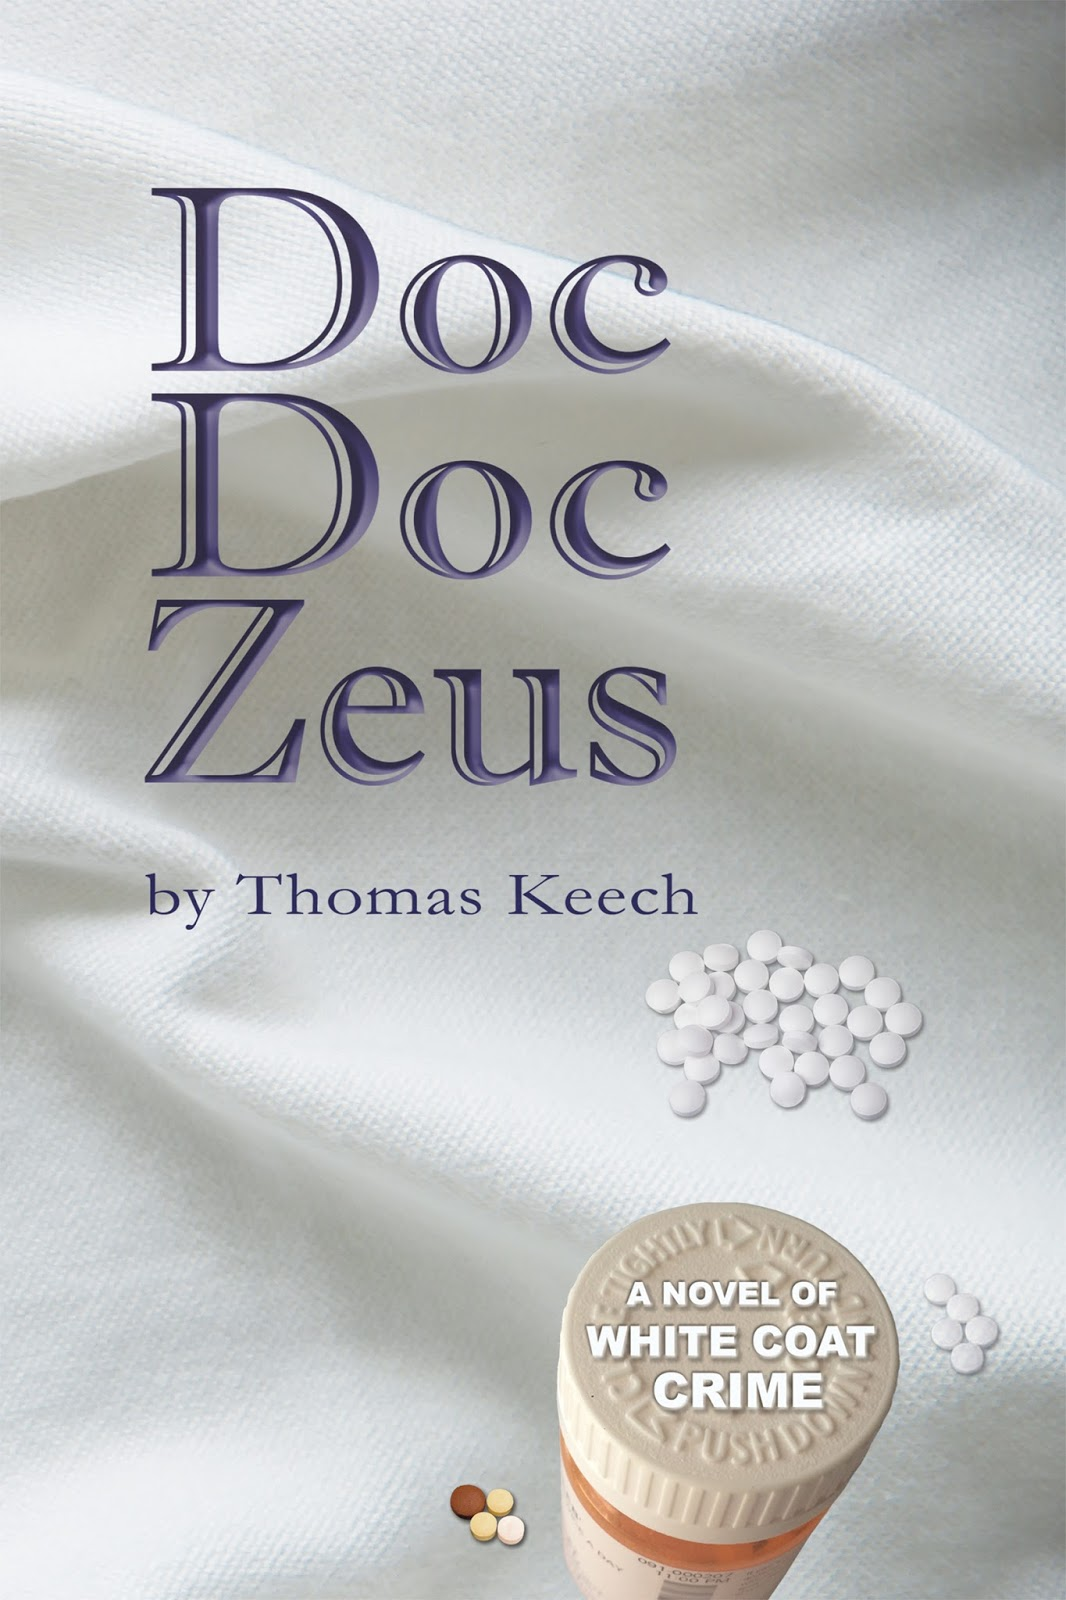 BLOG TOUR & REVIEW: Doc Doc Zeus by Thomas Keech